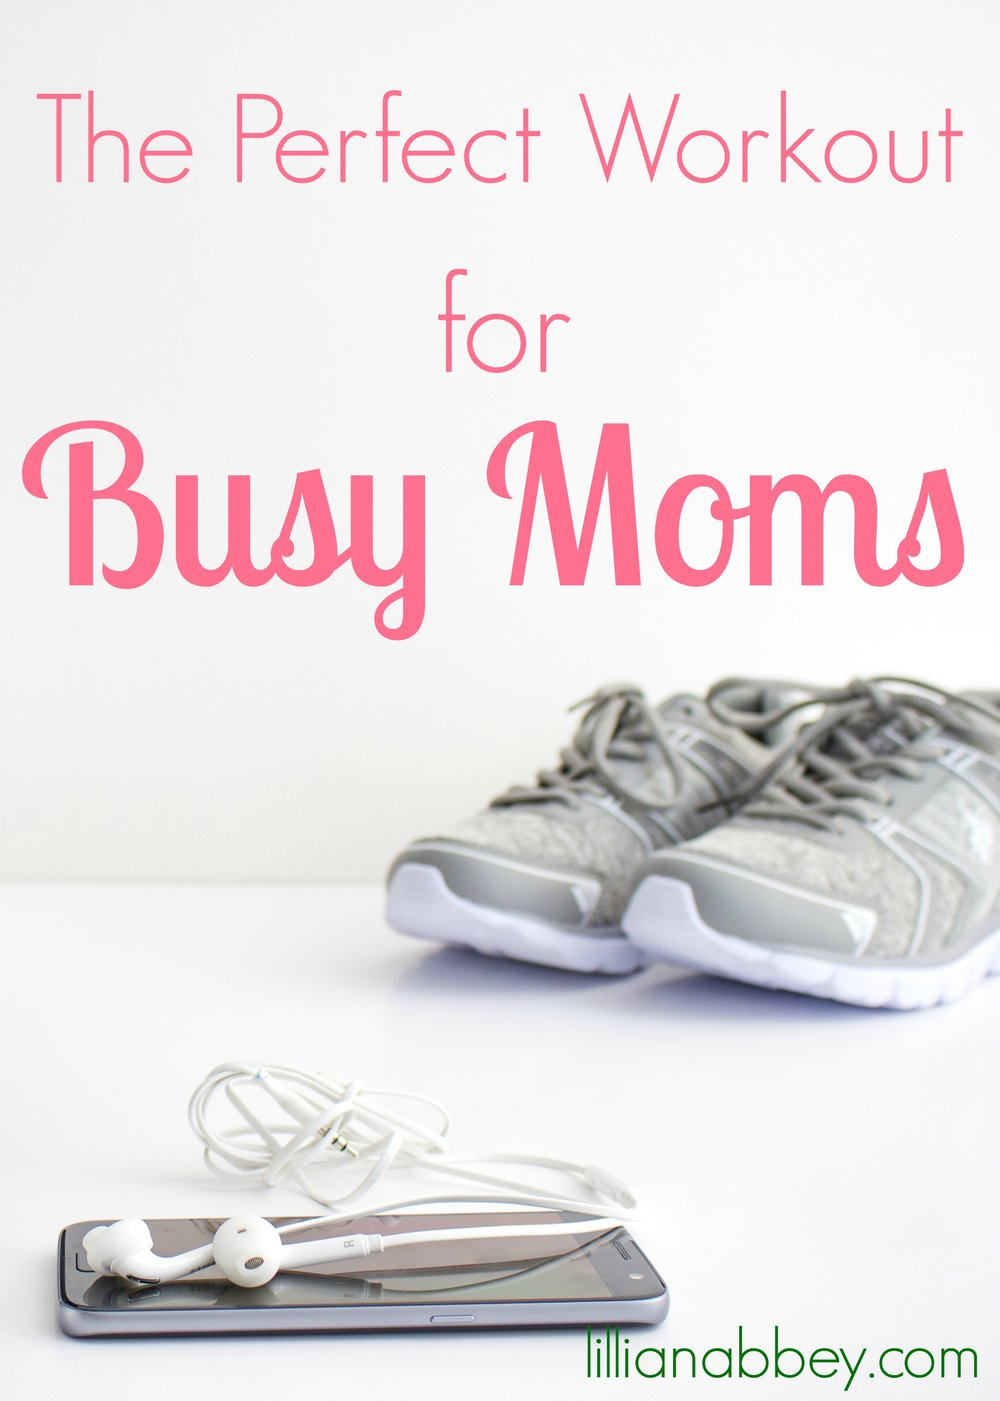 The Perfect Workout for Busy Moms